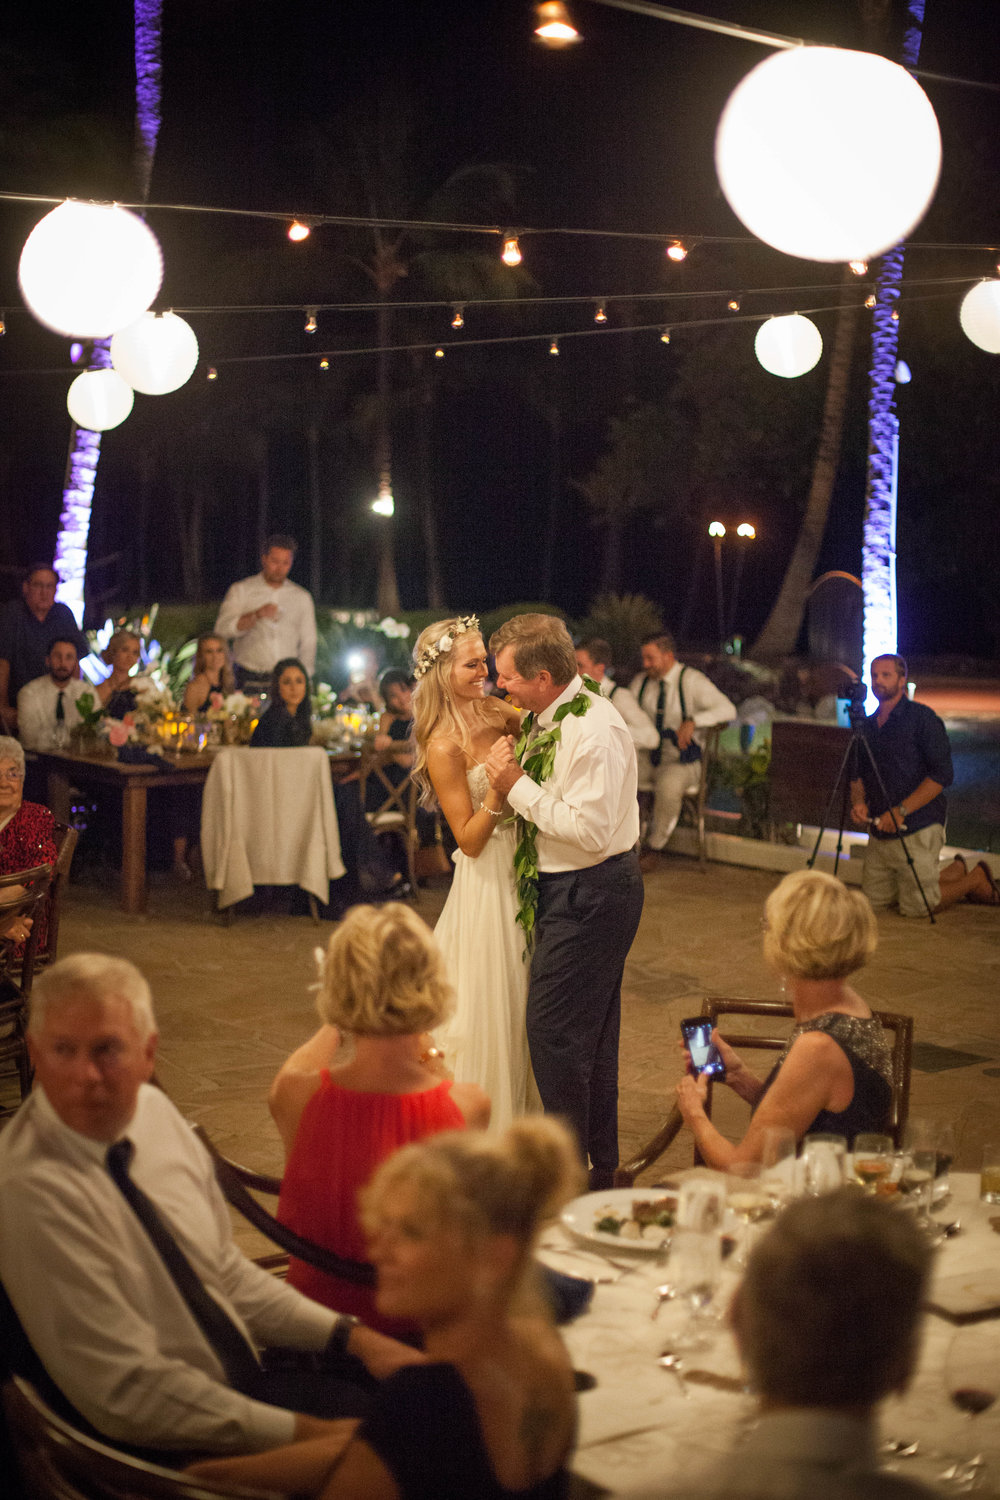 big island hawaii mauna lani resort wedding © kelilina photography 20160131195207-1.jpg